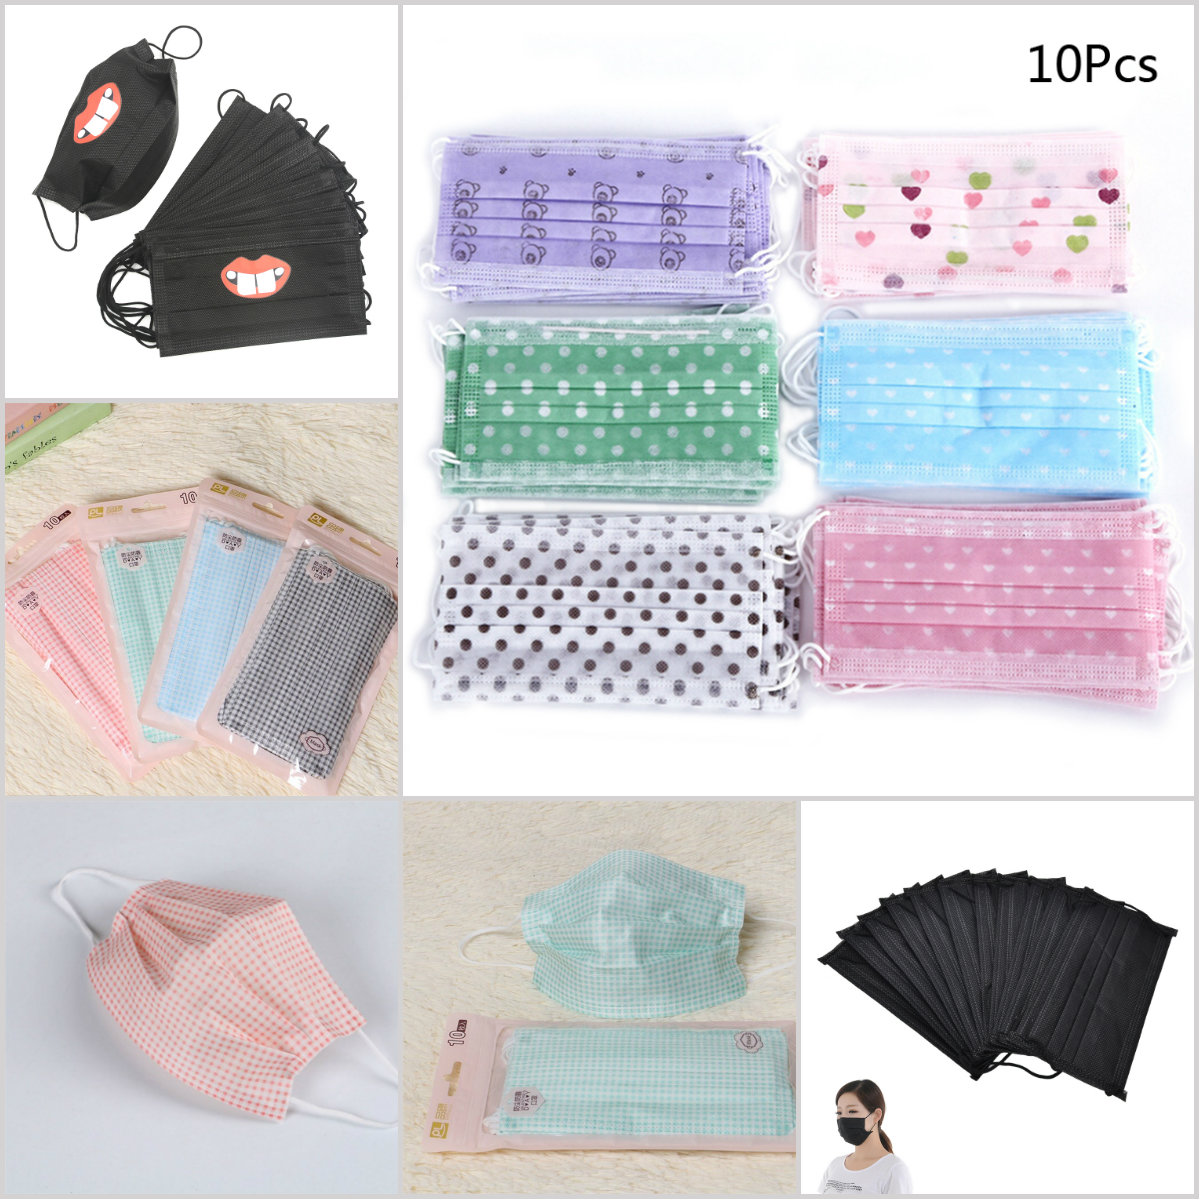 10 Pcs/lot Hot Dental Disposable Medical Anti Flu Dust Mouth Surgical Face Mask Respirator Nonwoven Random Colors